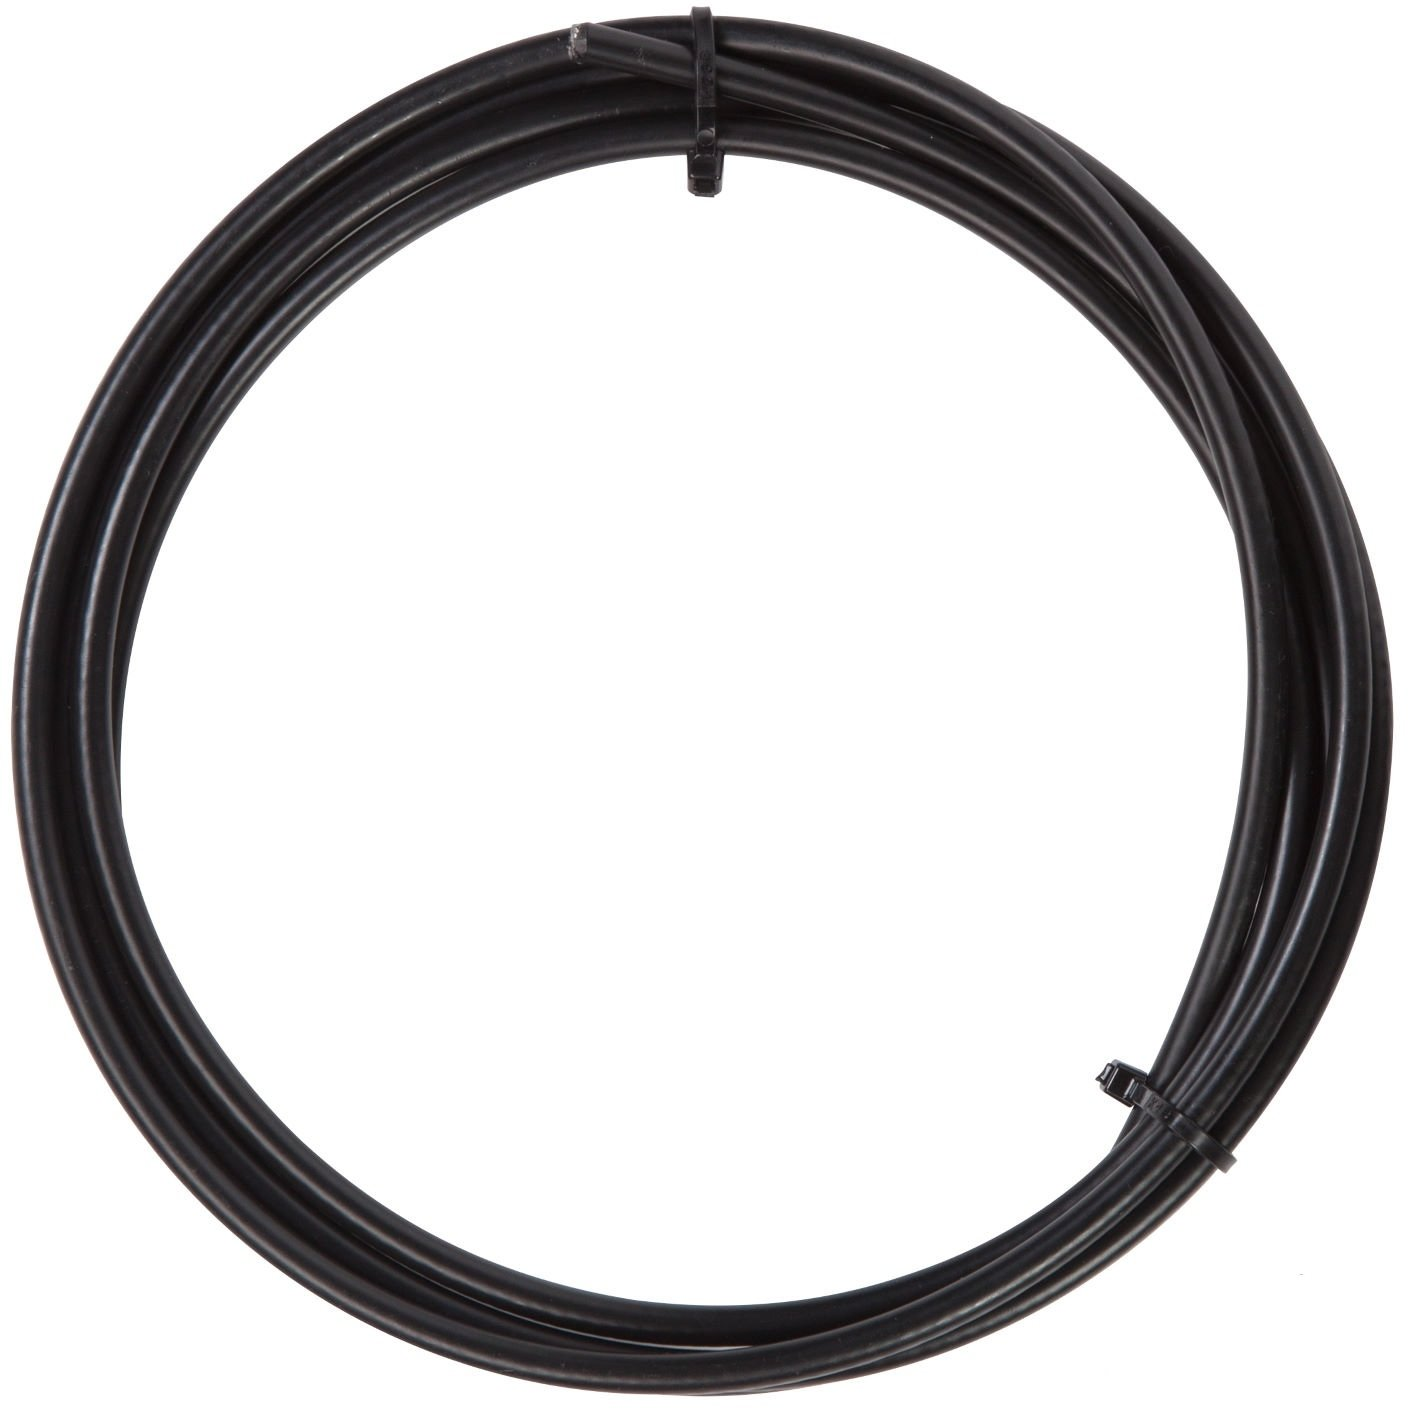 Positz Universal Bicycle Gear Cable Outer Housing Casing 4mm for SIS SP41 Black - Workshop Roll 10 Meters (33ft)